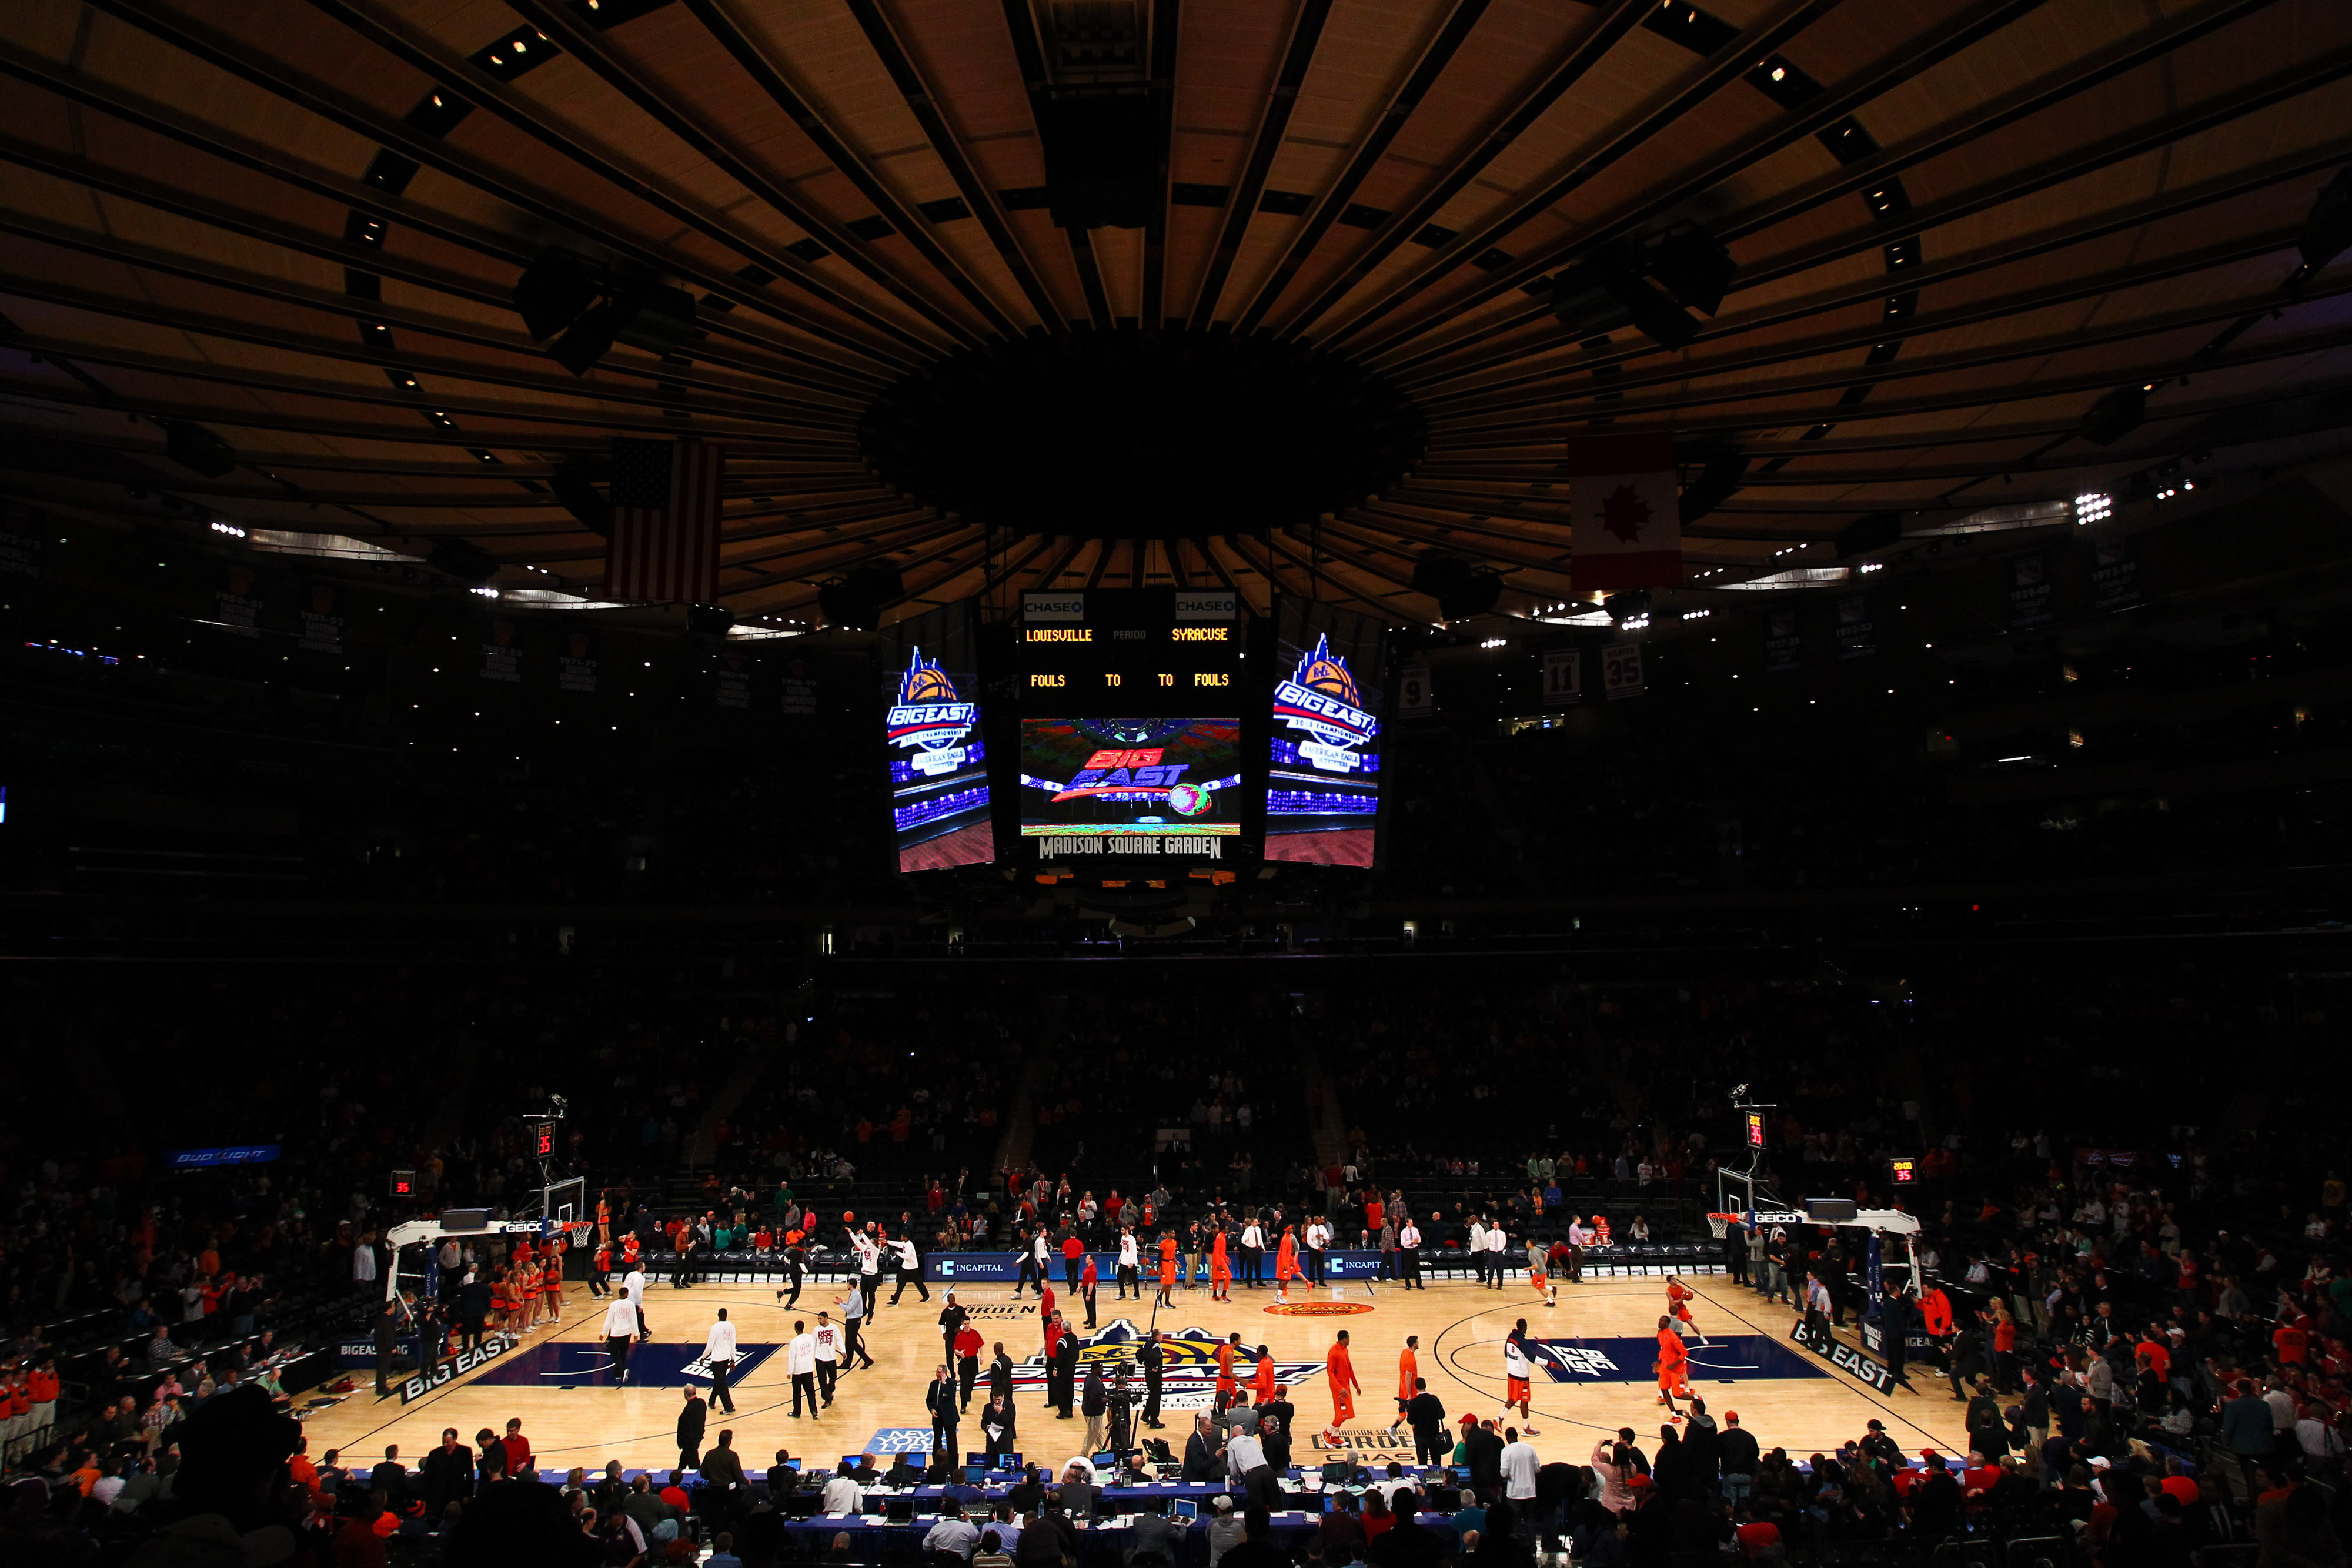 MSG will continue to be the home of the Big East's biggest moments